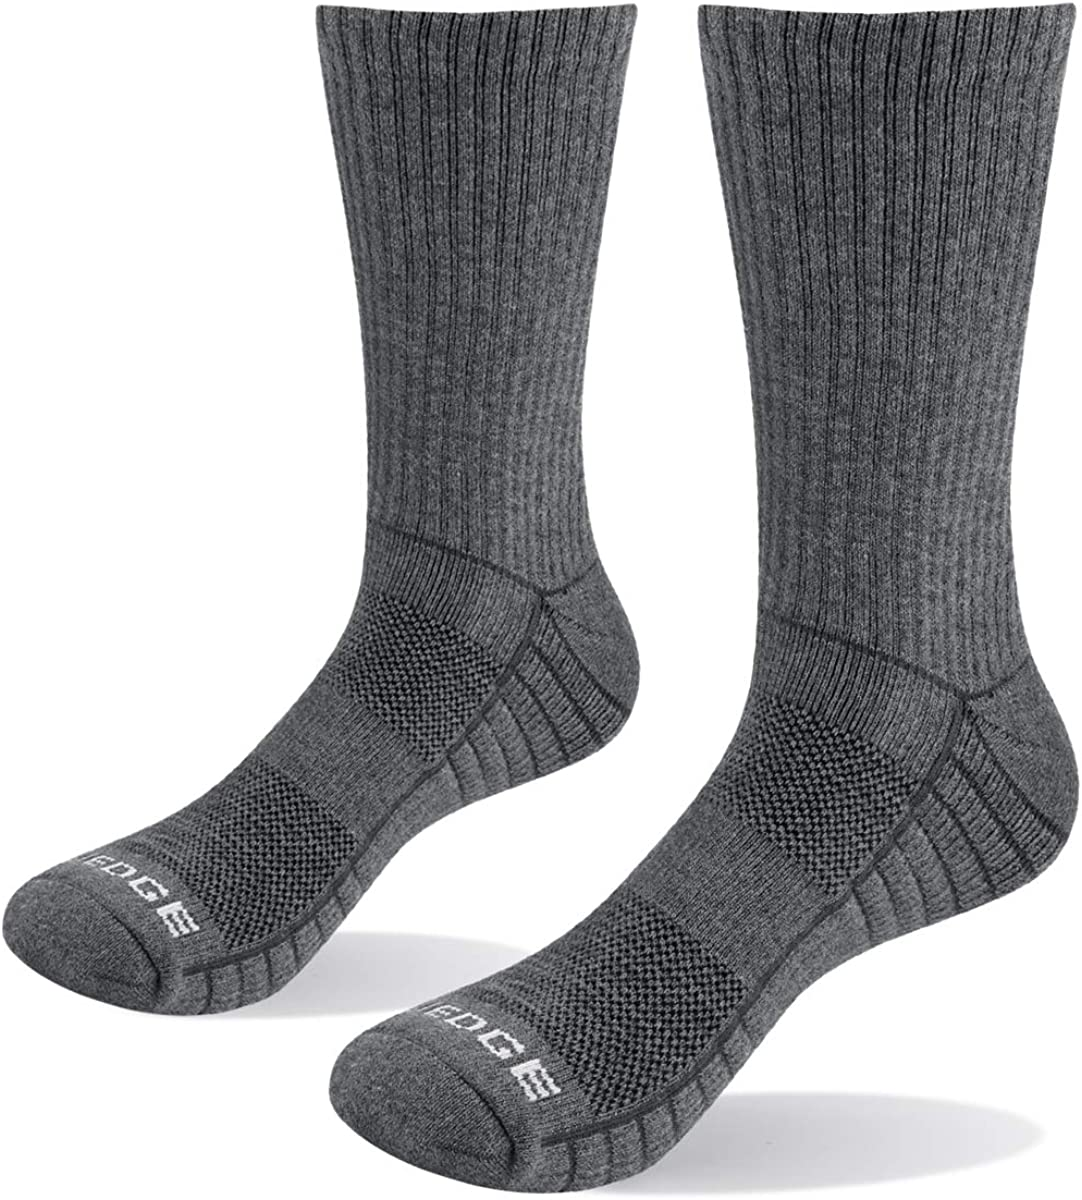 YUEDGE Mens 5 Pairs//Pack Athletic Sports Workout Socks Performance 6-9//9-11//11-13 Moisture Wicking Cotton Cushion Crew Socks